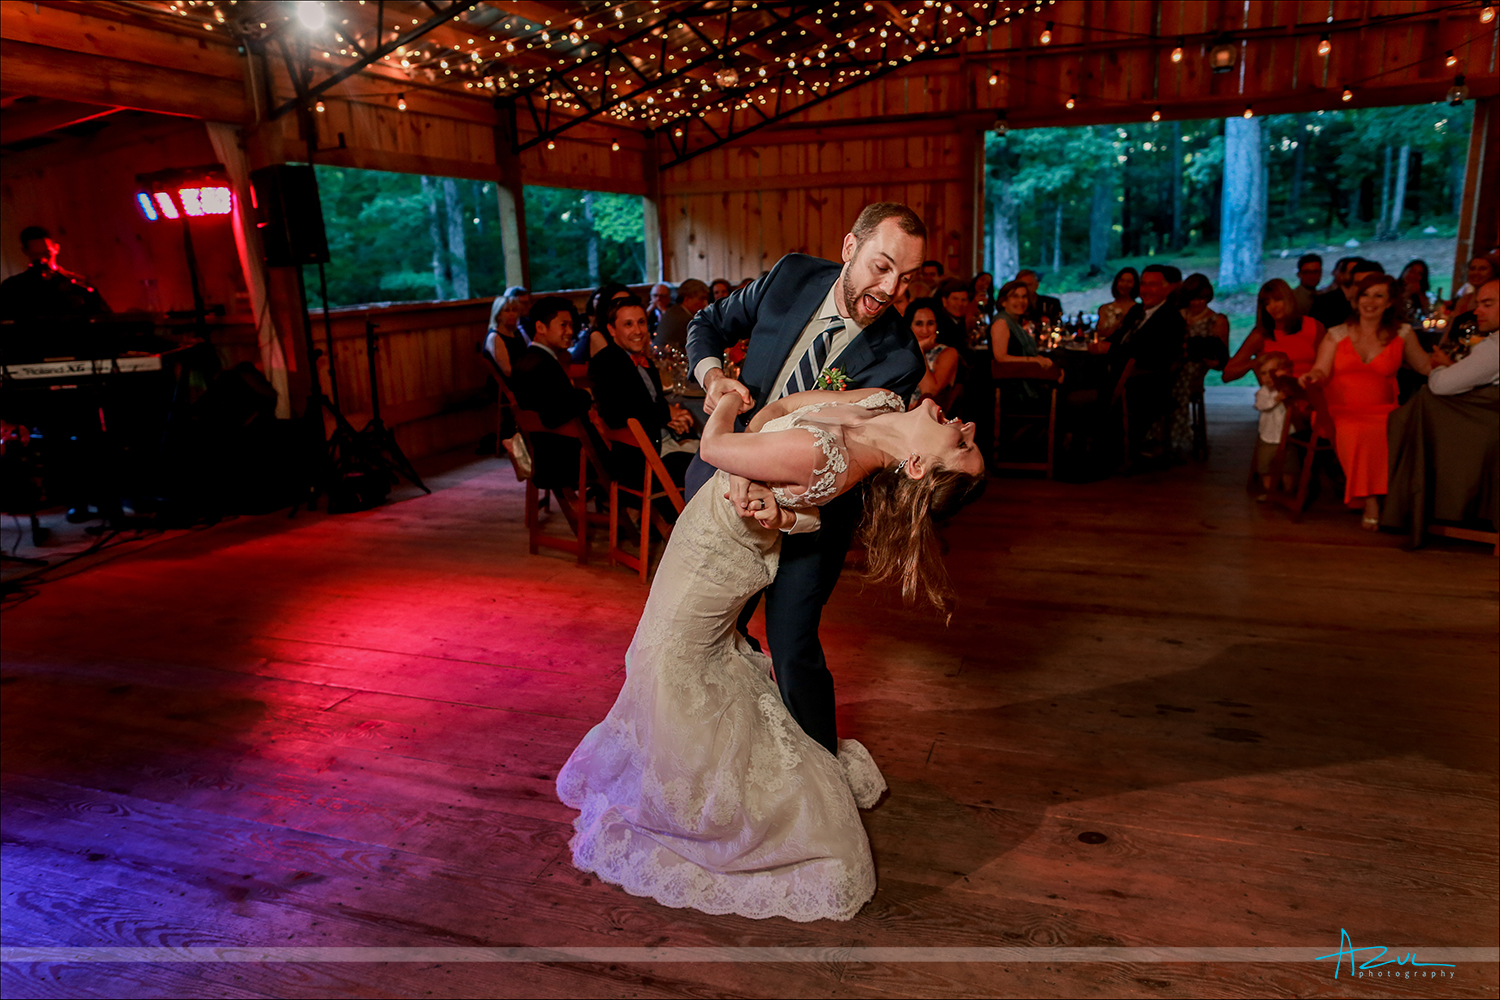 Photography of the first dance ending with the groom dipping the bride at the end at Rock Quarry Farm in North Carolina